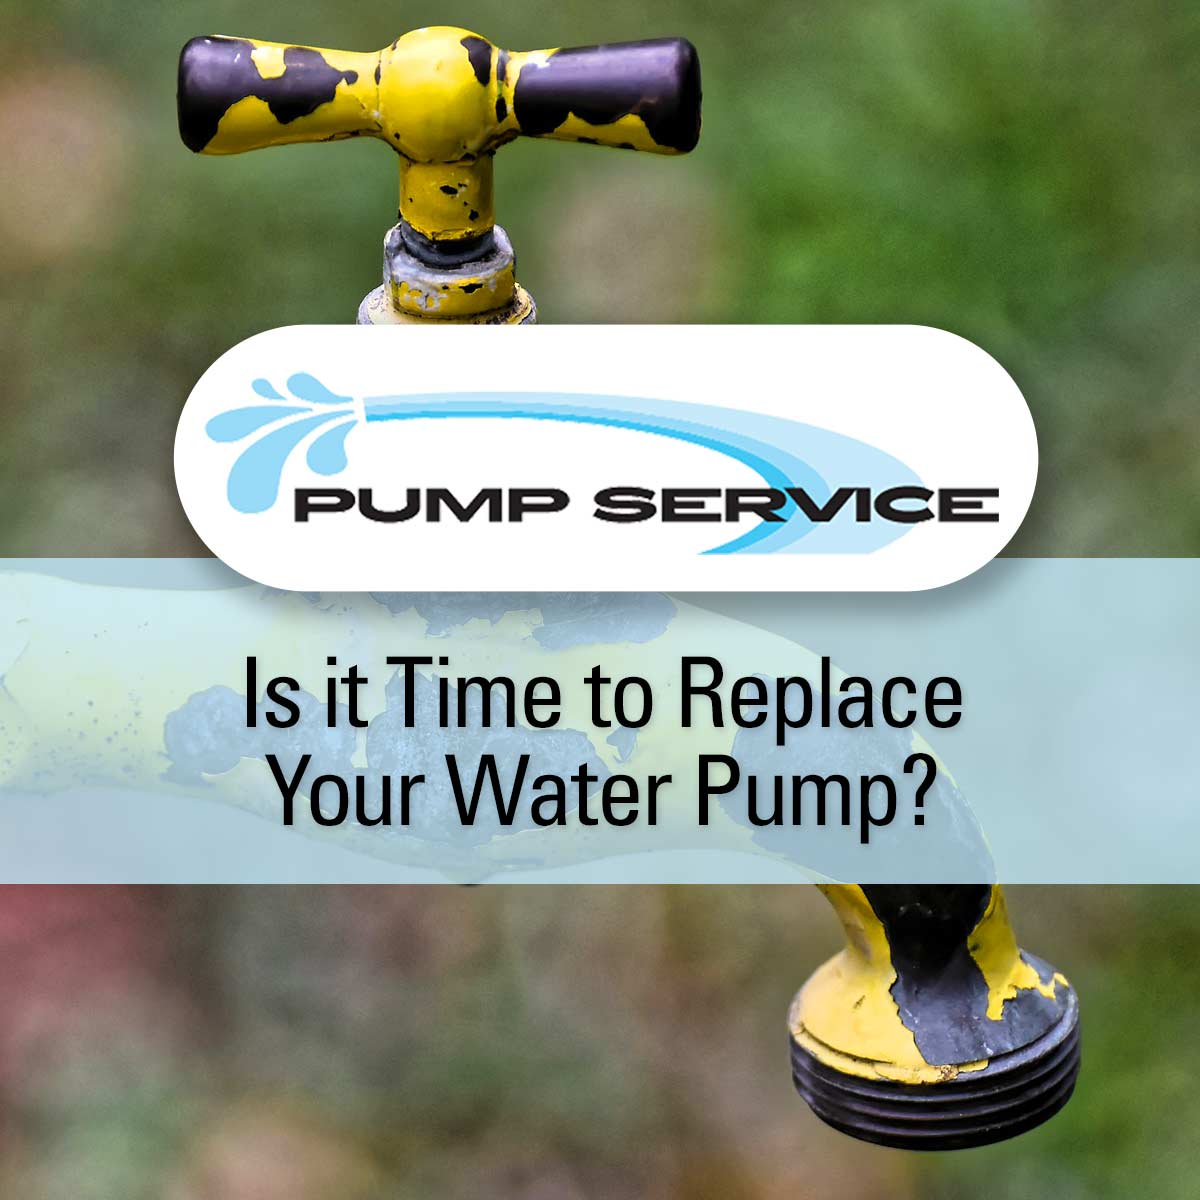 Is it Time to Replace Your Water Pump?